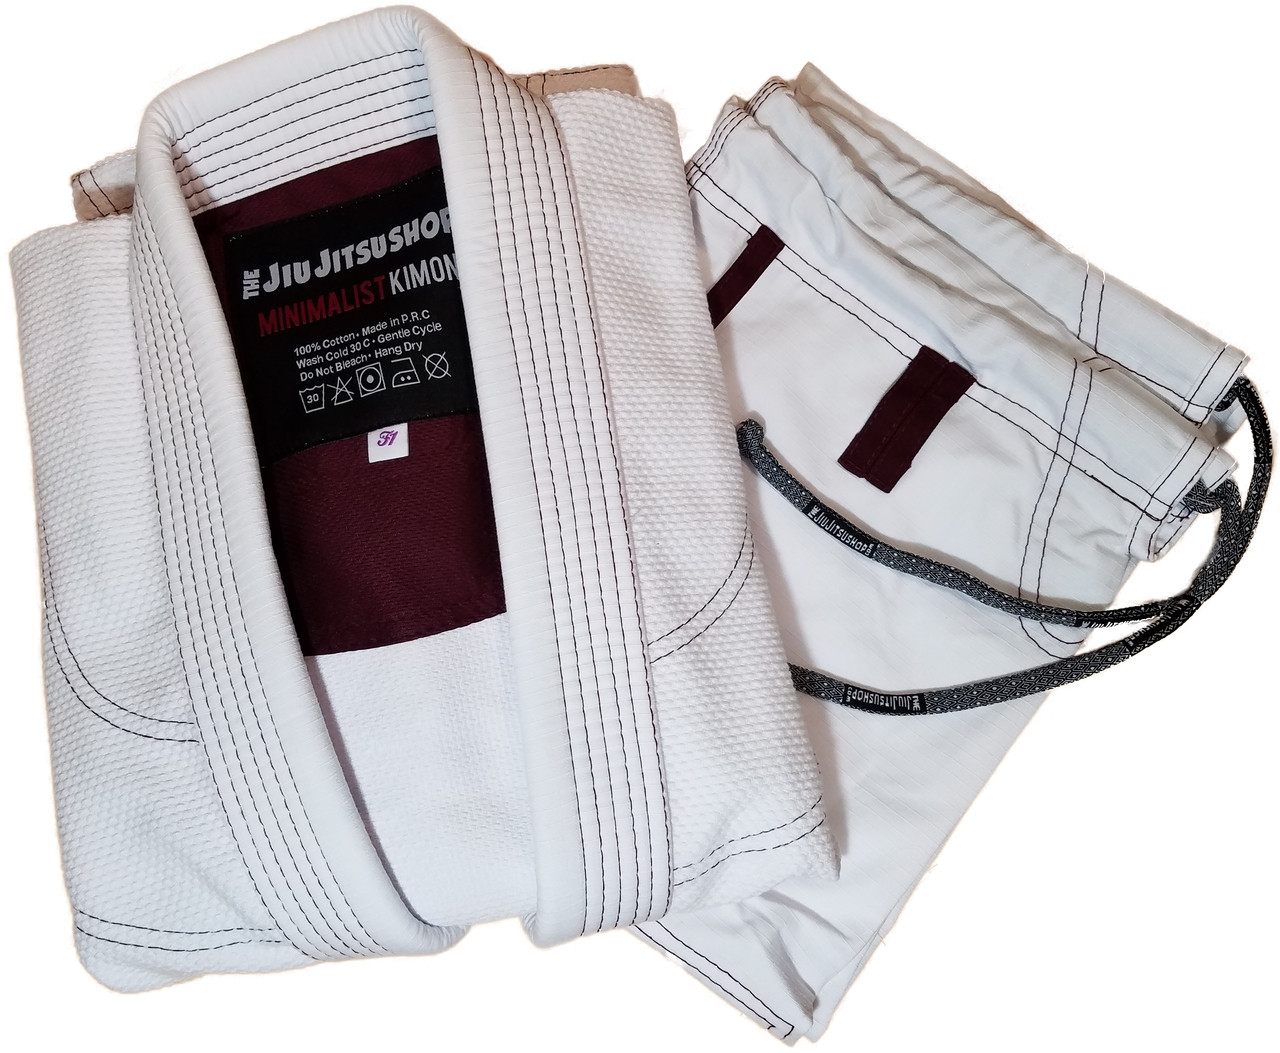 The Jiu Jitsu Shop Minimalist White with Burgandy accents.  Specifically cut for women.  Available at www.thejiujitsushop.com  Enjoy Free Shipping today!